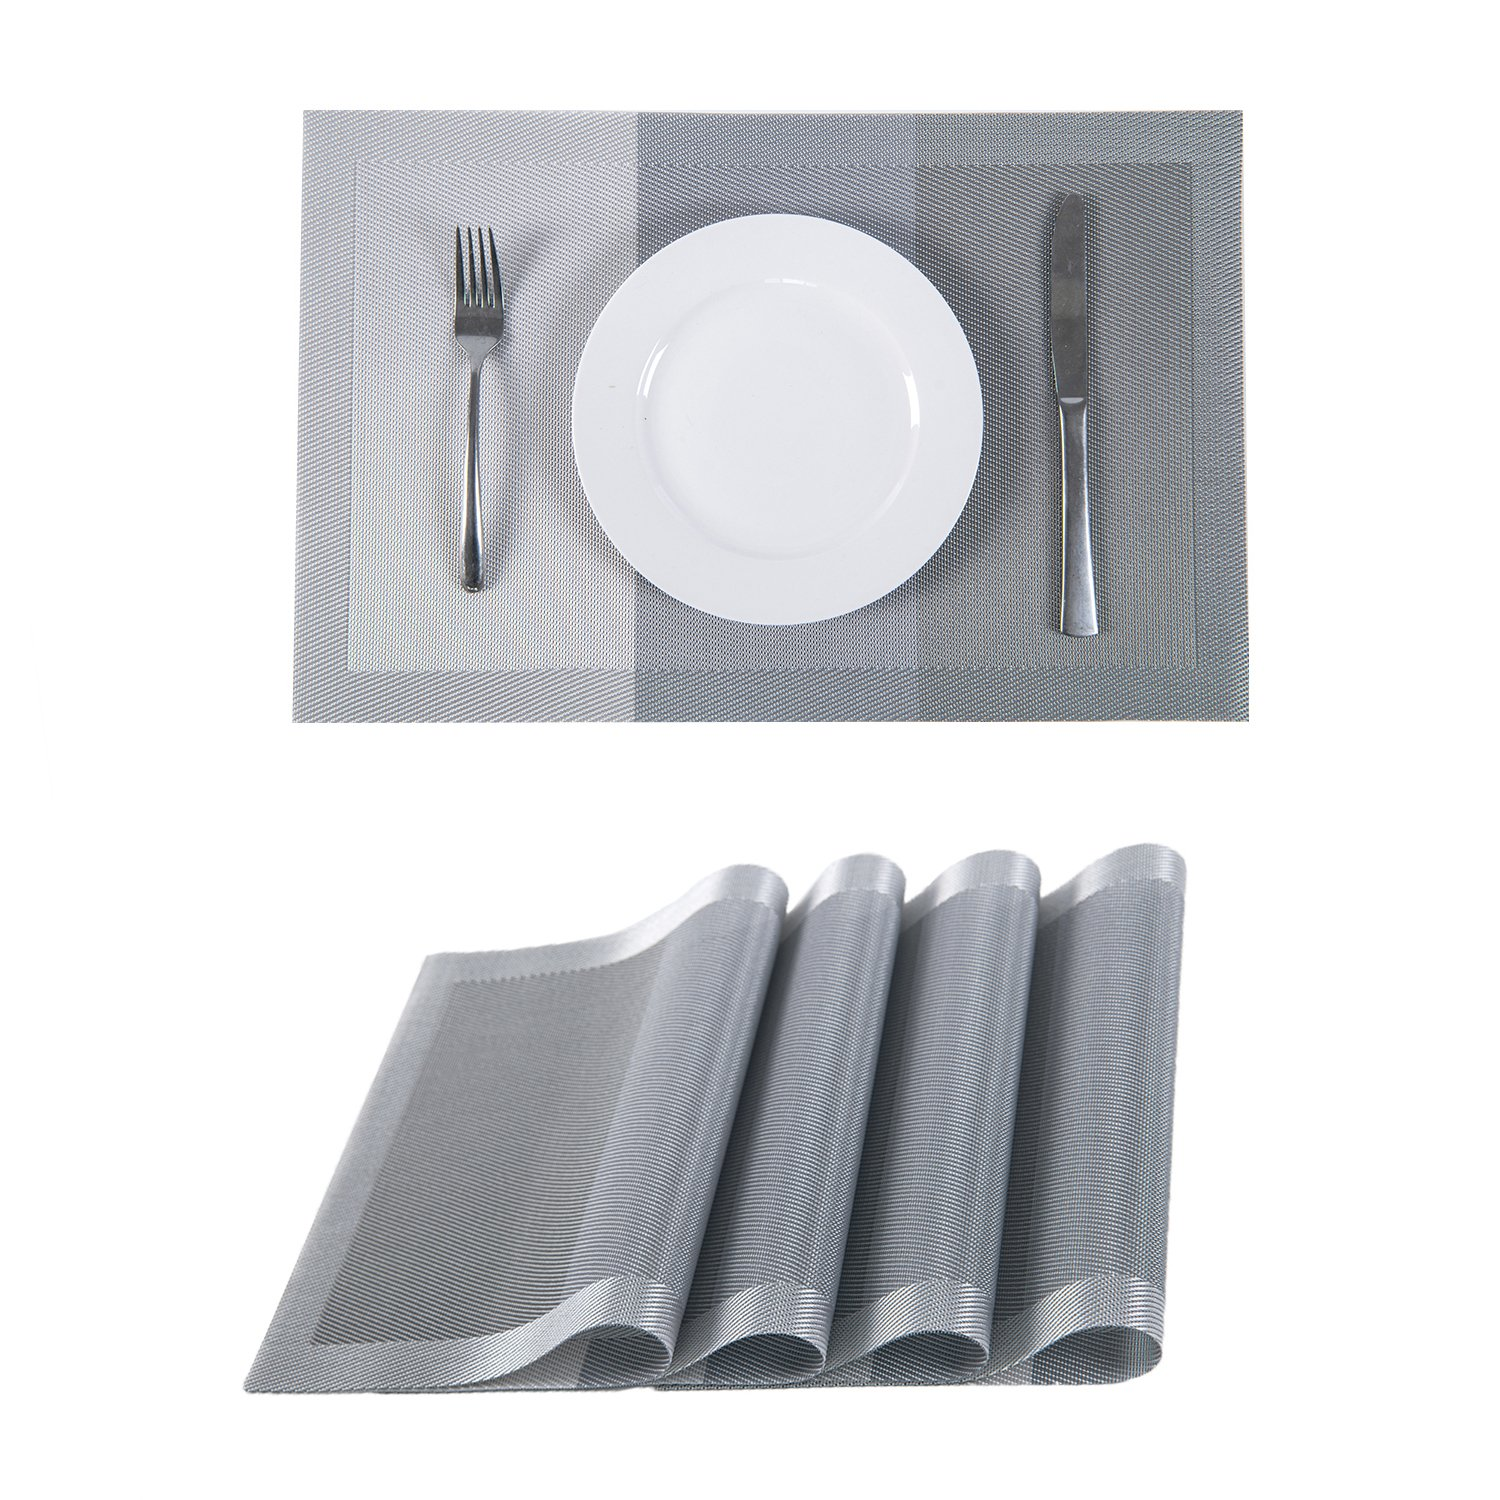 SUNSHINE FASHION Set of 4 Placemats,Placemats Dining Table,Heat-Resistant Placemats, Stain Resistant Washable PVC Table Mats,Kitchen Table mats(4, Strip-Gray)